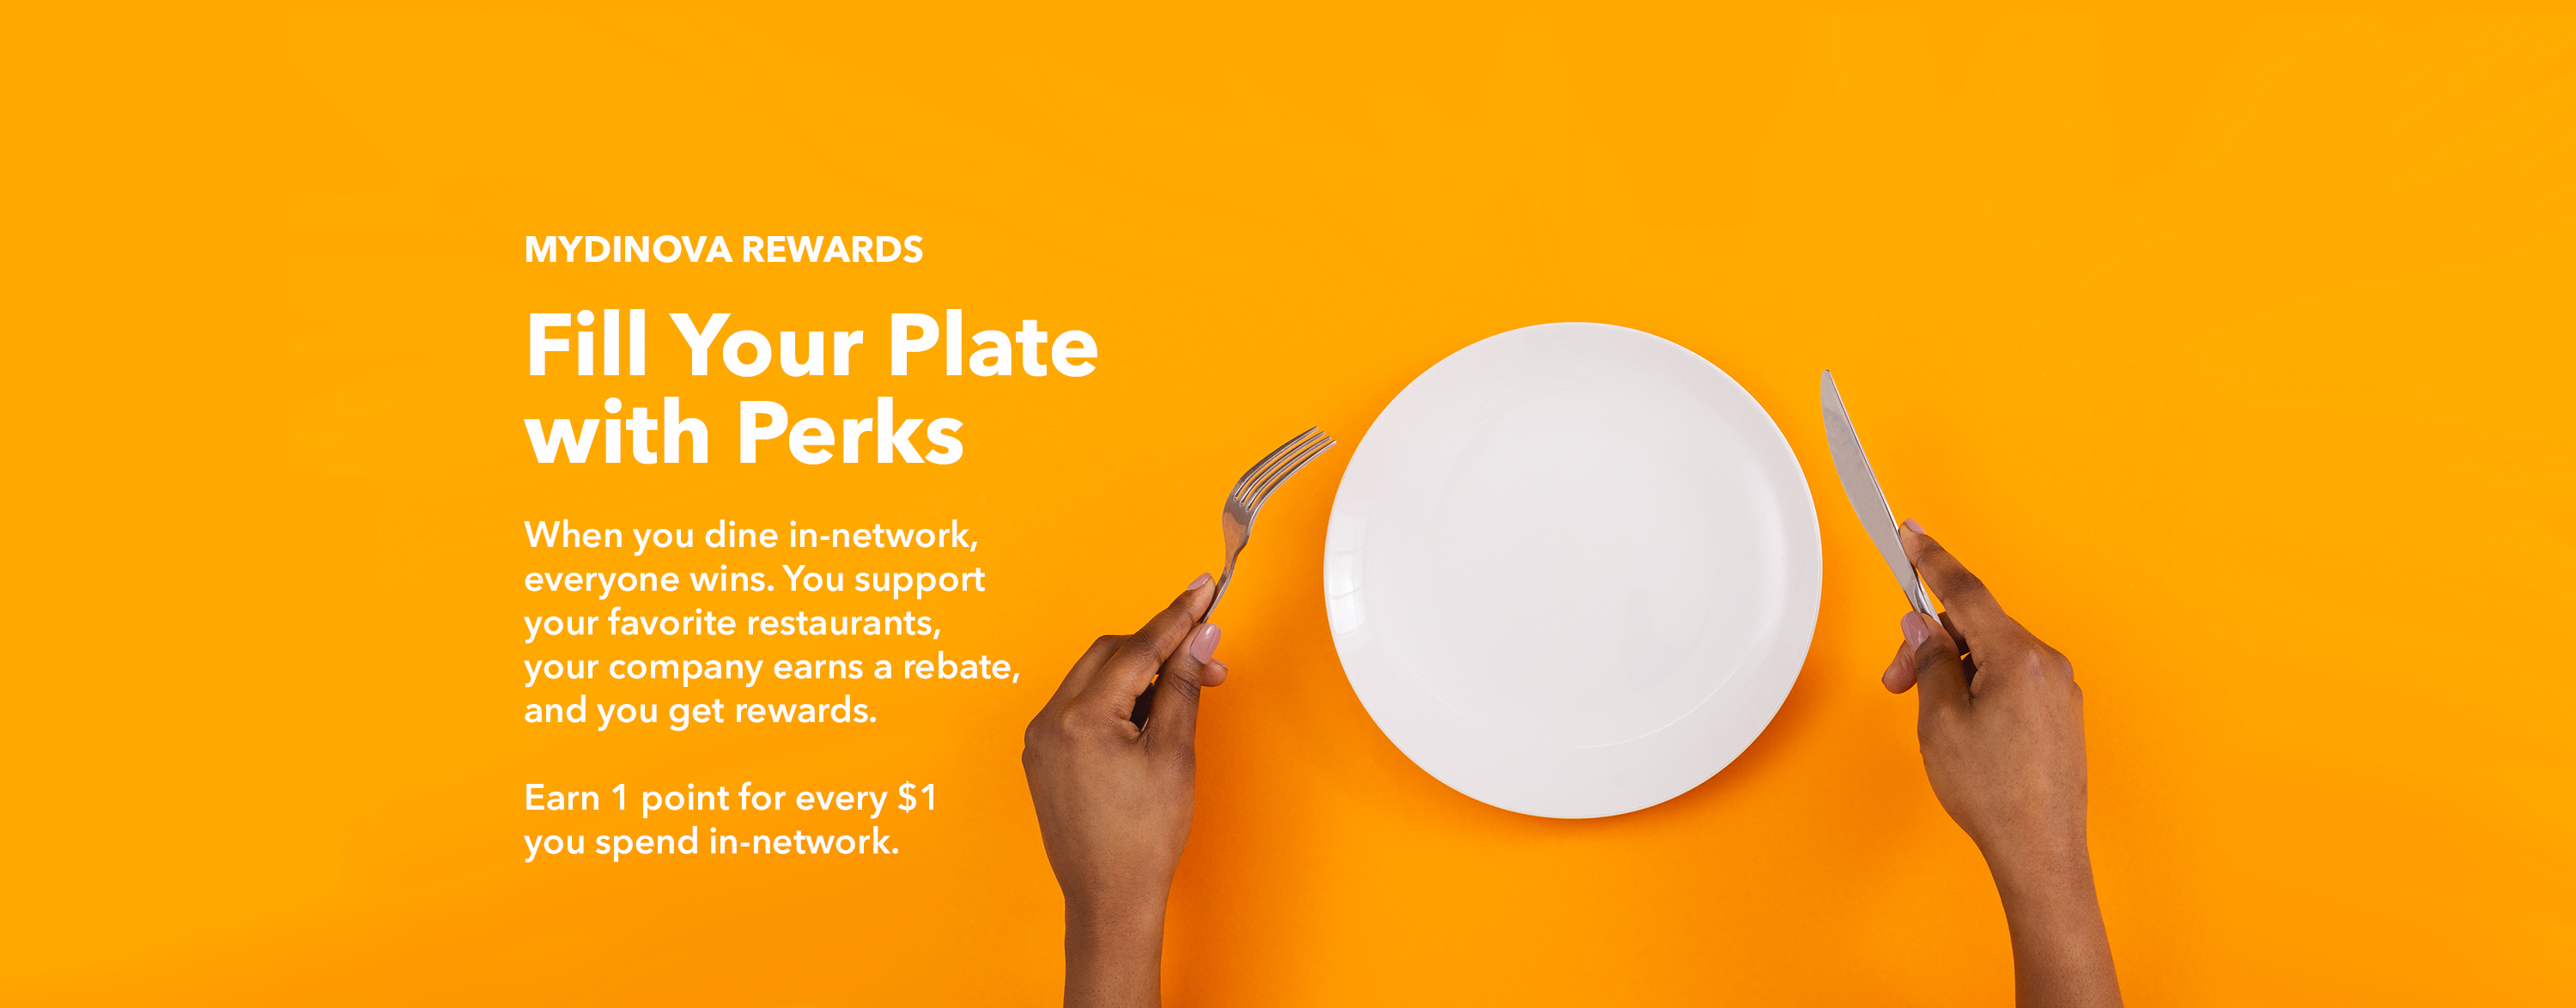 empty plate with diner hands holding fork and knife, ready for rewards